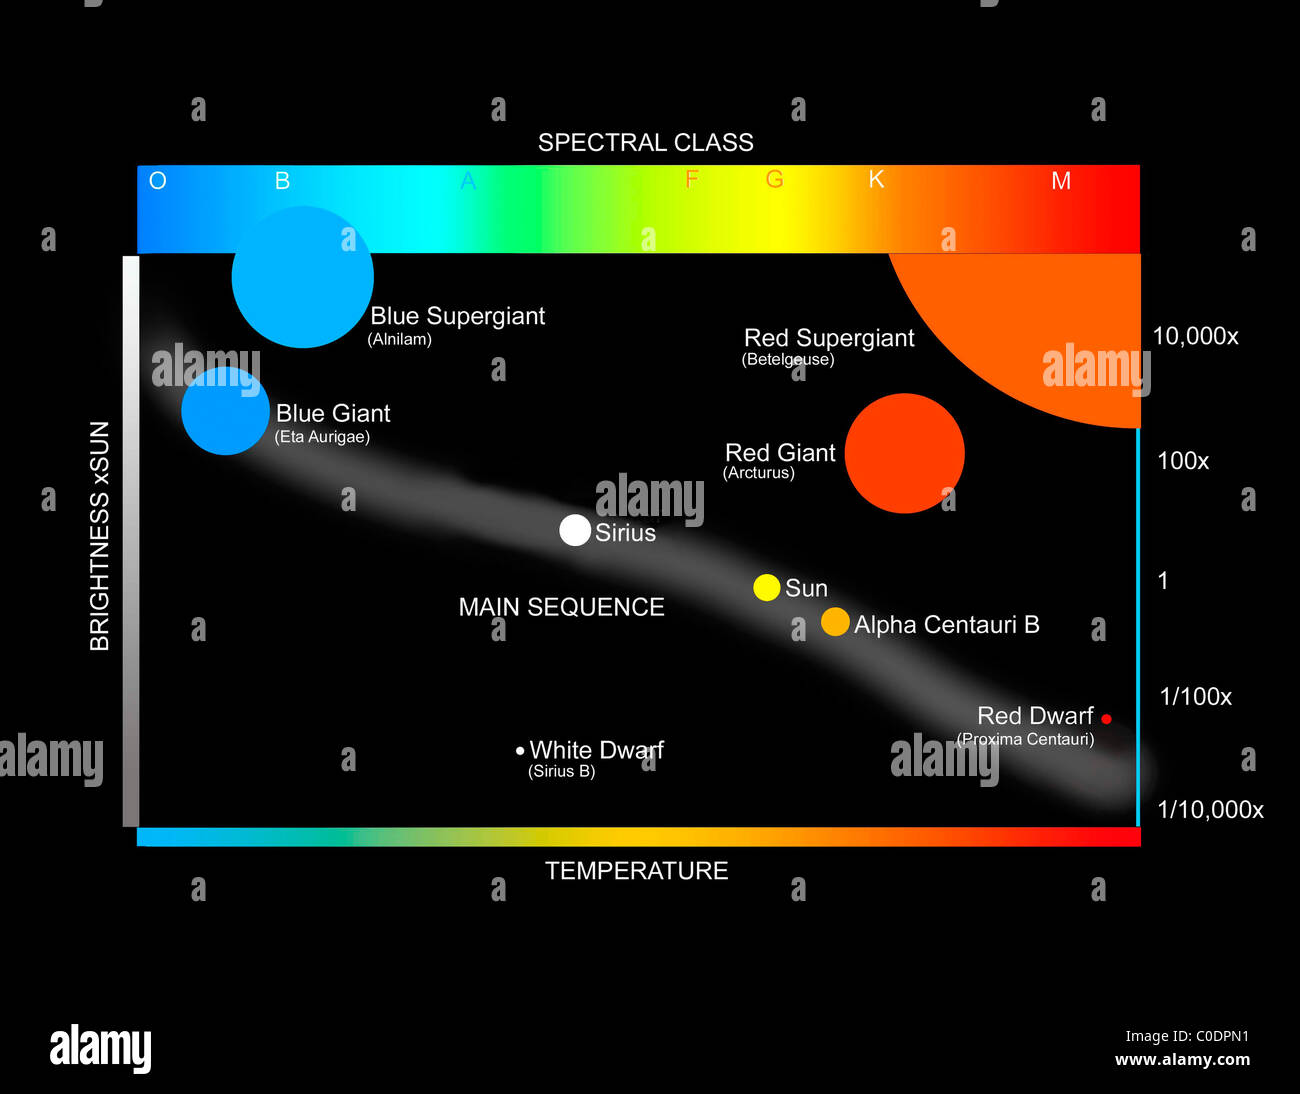 A simplified Herzprung-Russell Diagram showing how stars are classified. - Stock Image